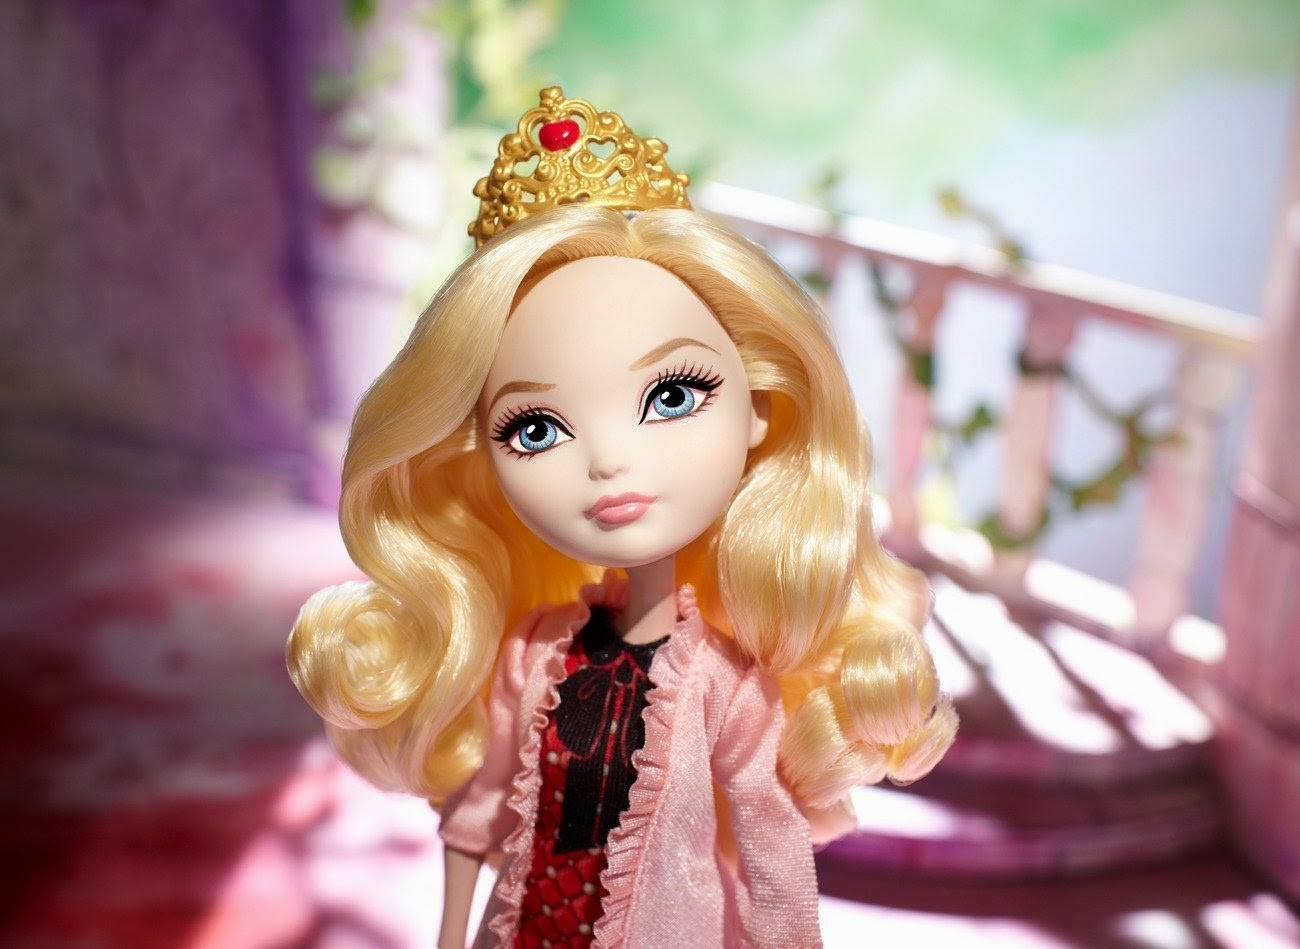 TOYS - Muñeca Apple White : Ever After High   Colección Getting Fairest // Baile de Corazones  Juguete Oficial | Mattel BDL39 | A partir de 6 años